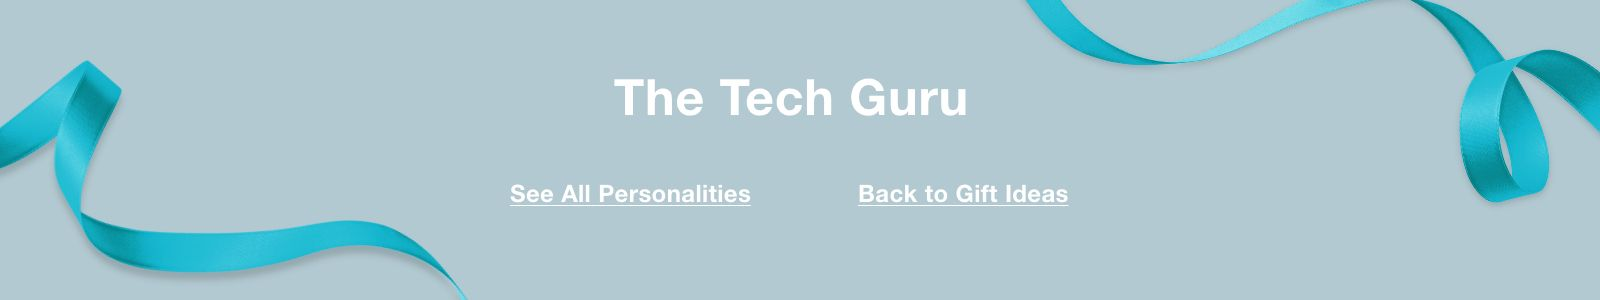 The Tech Guru, See All Personalities, Back to Gift Ideas